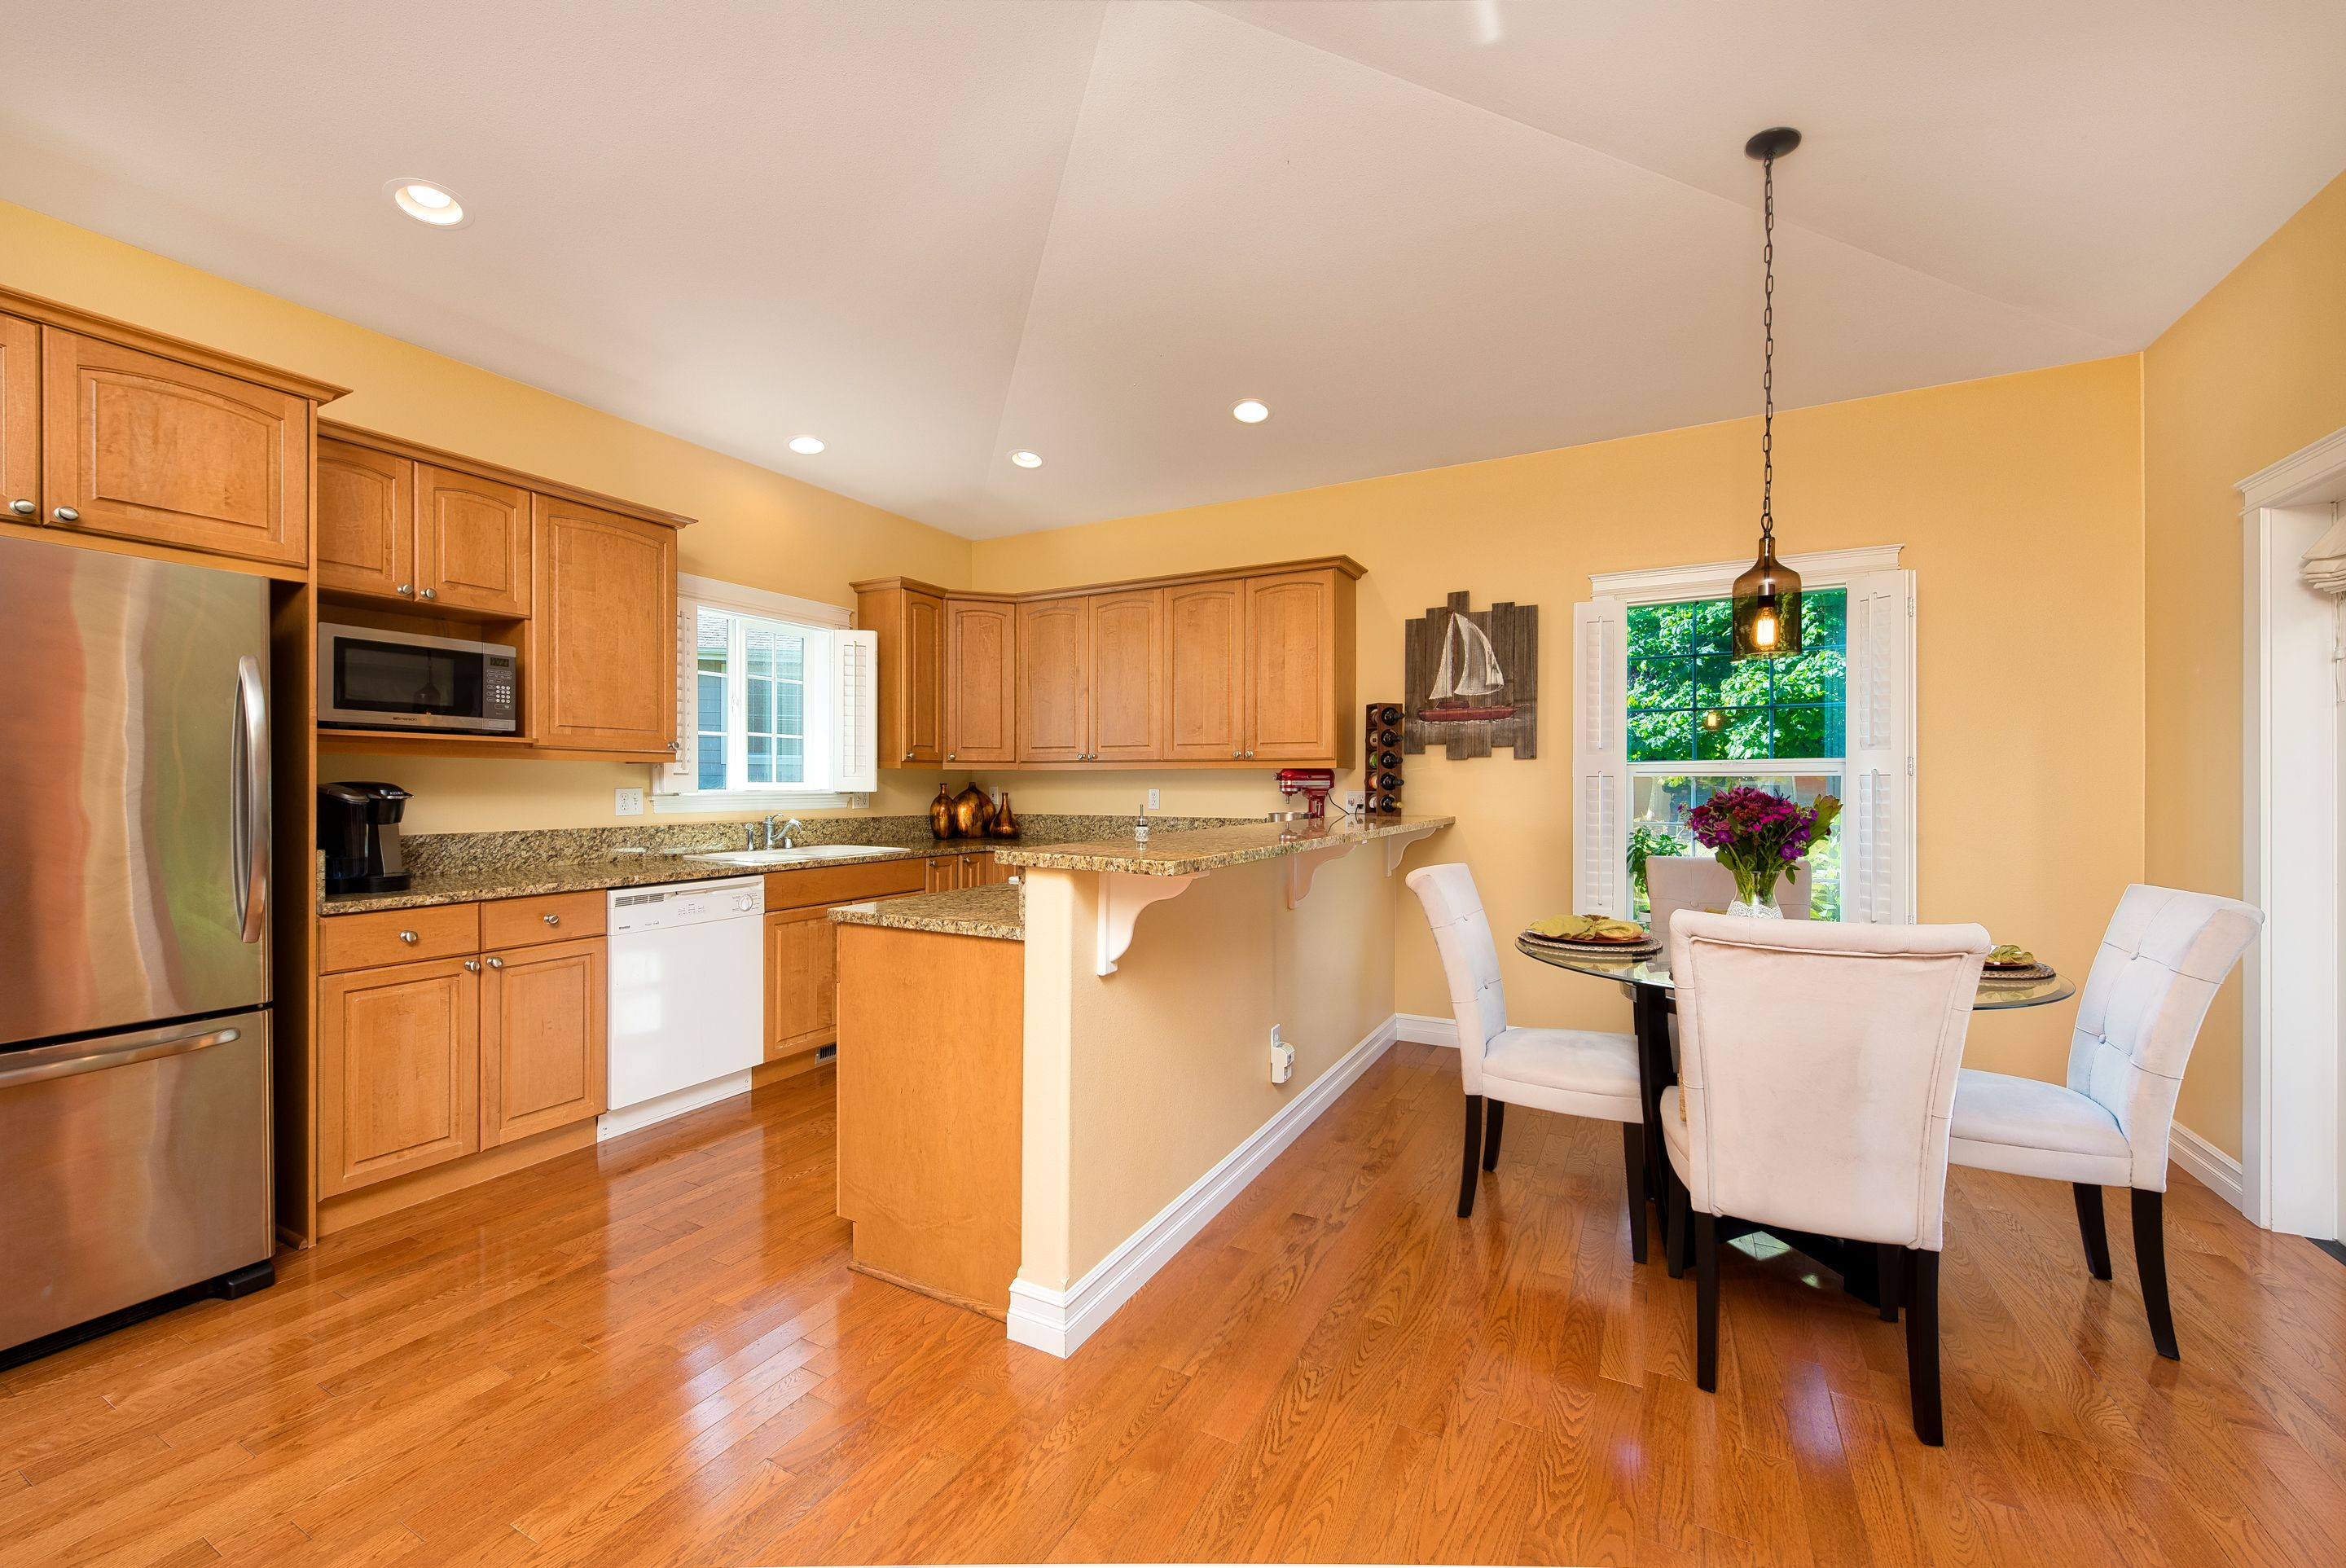 Spotless move in ready home provides stress free living: the ... on